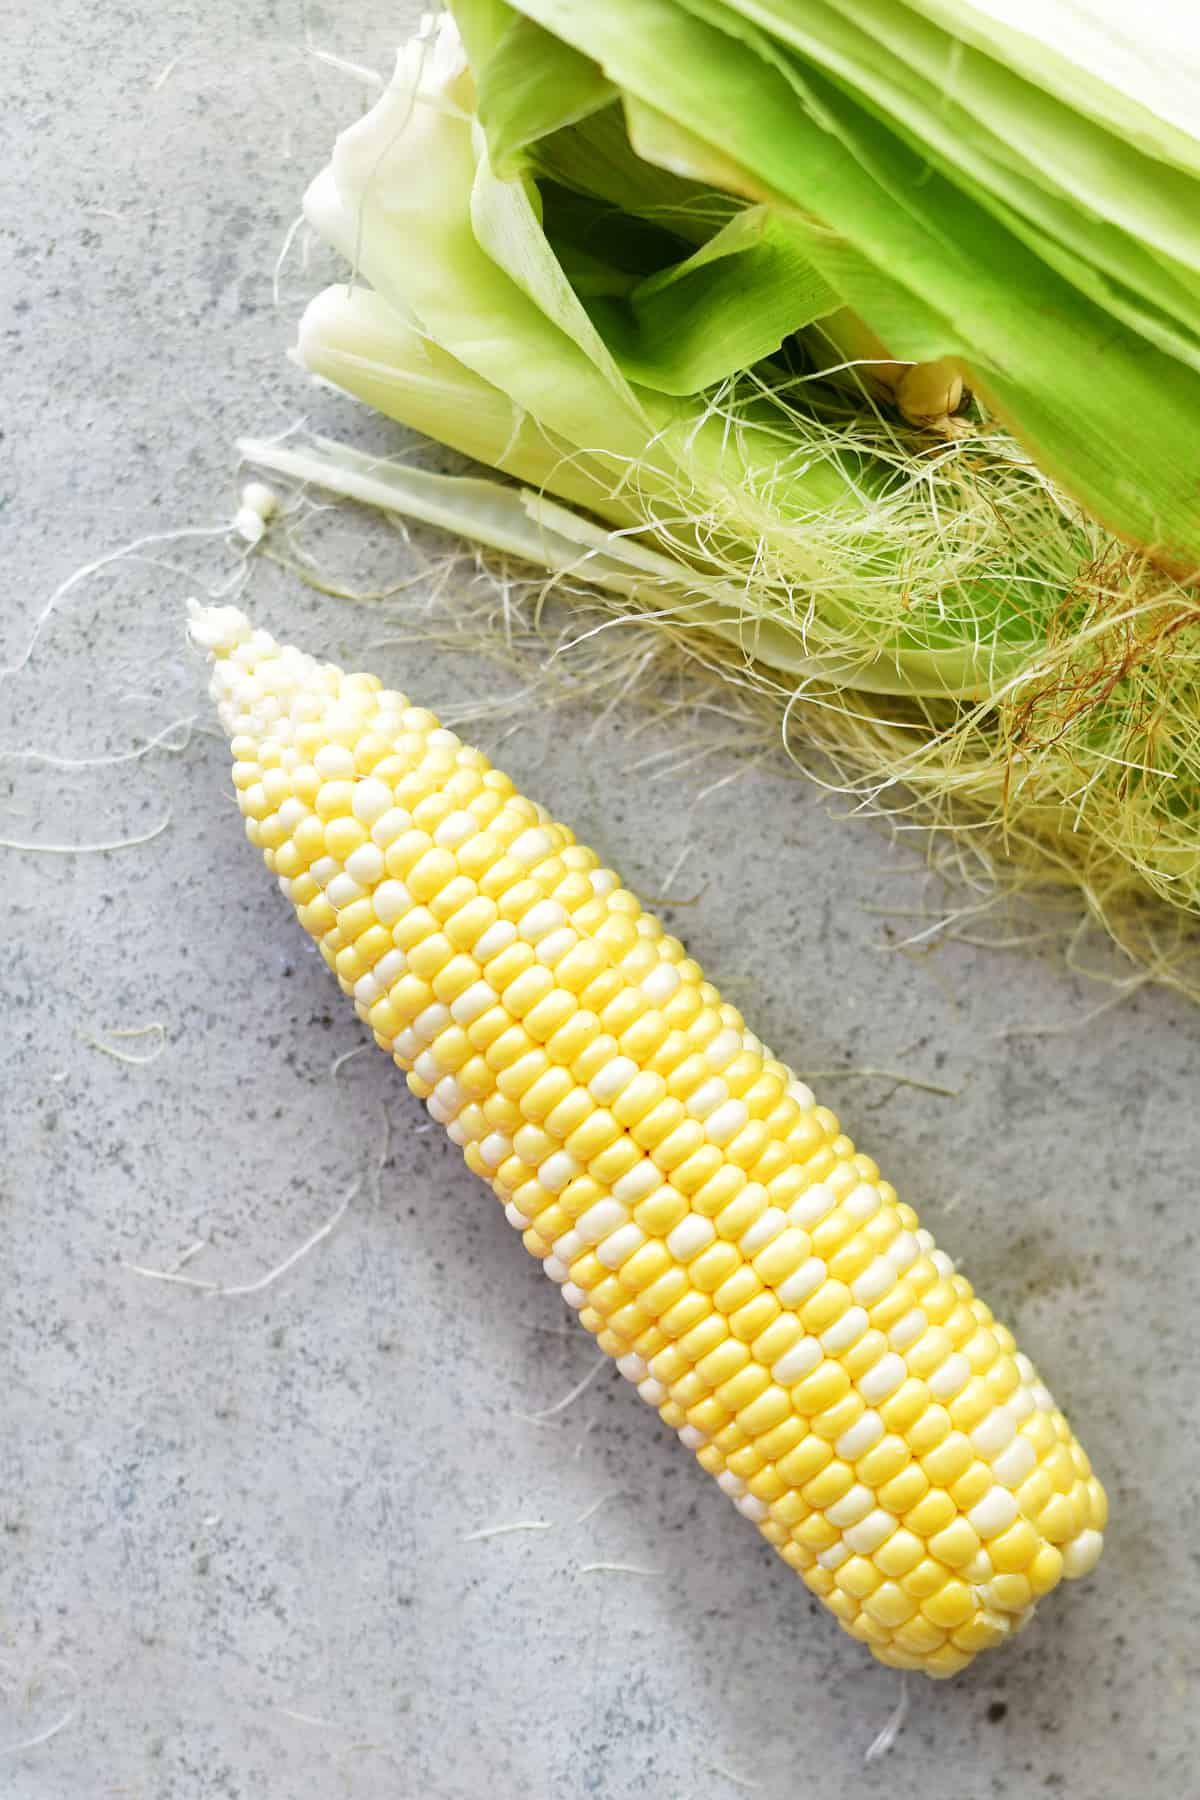 peeled corn on the cob for grilling